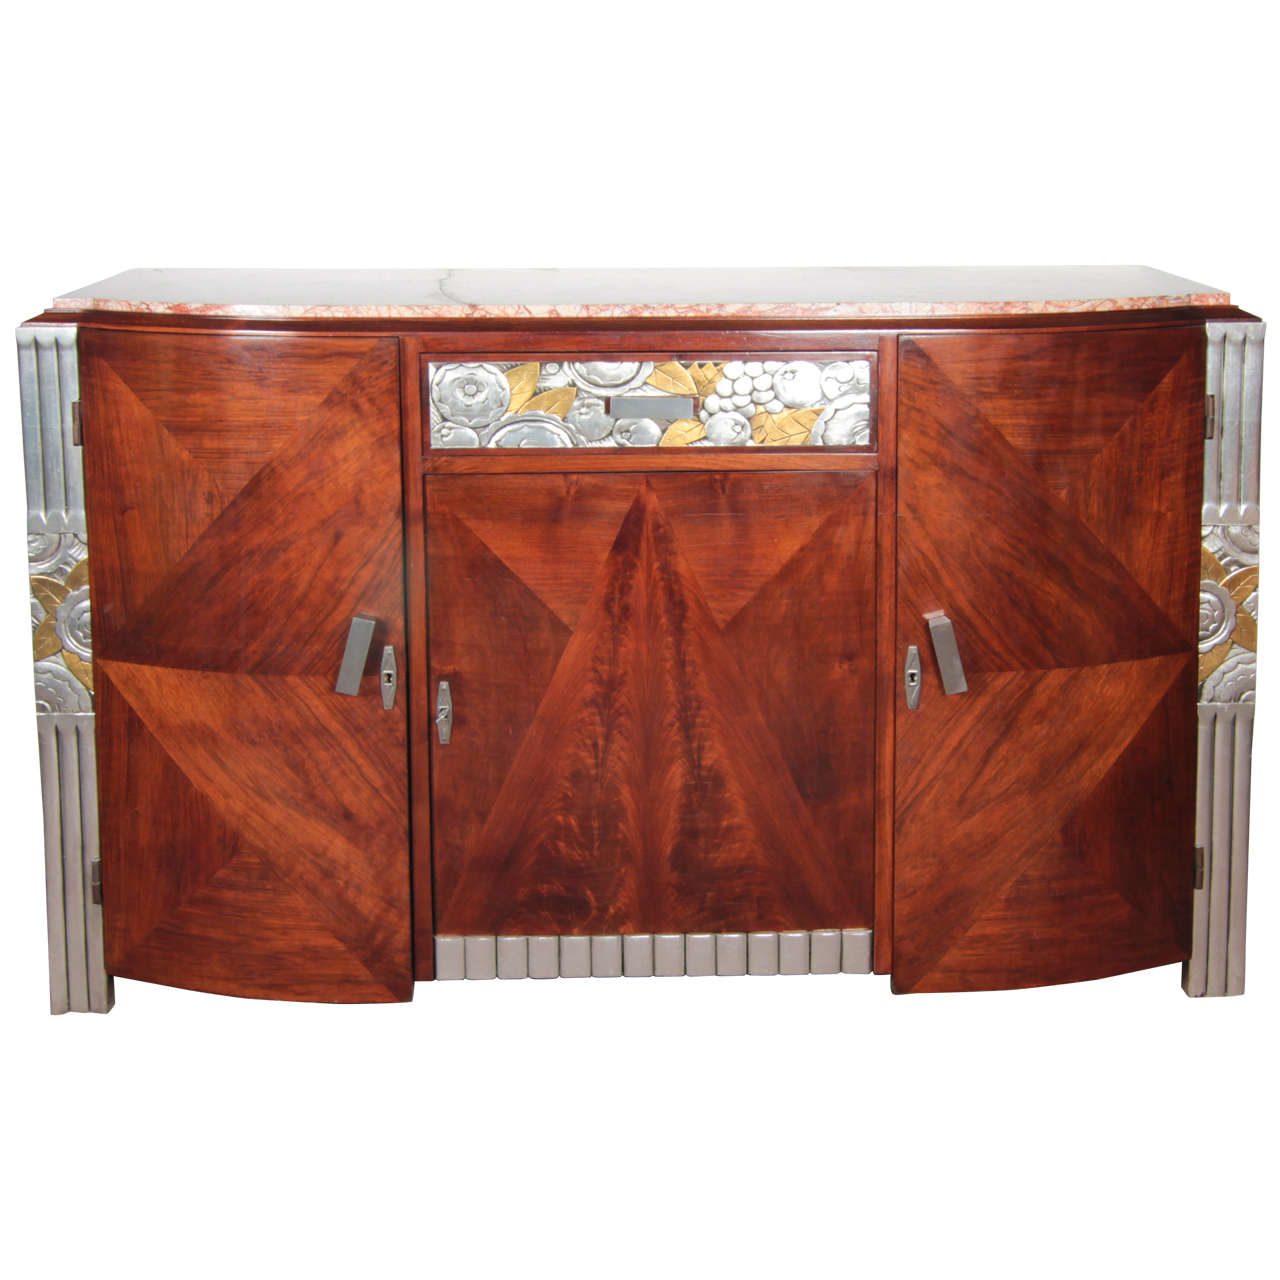 French Art Deco Gold and Silver Leaf, Hand-Carved Parquetry Inlaid Cabinet For Sale